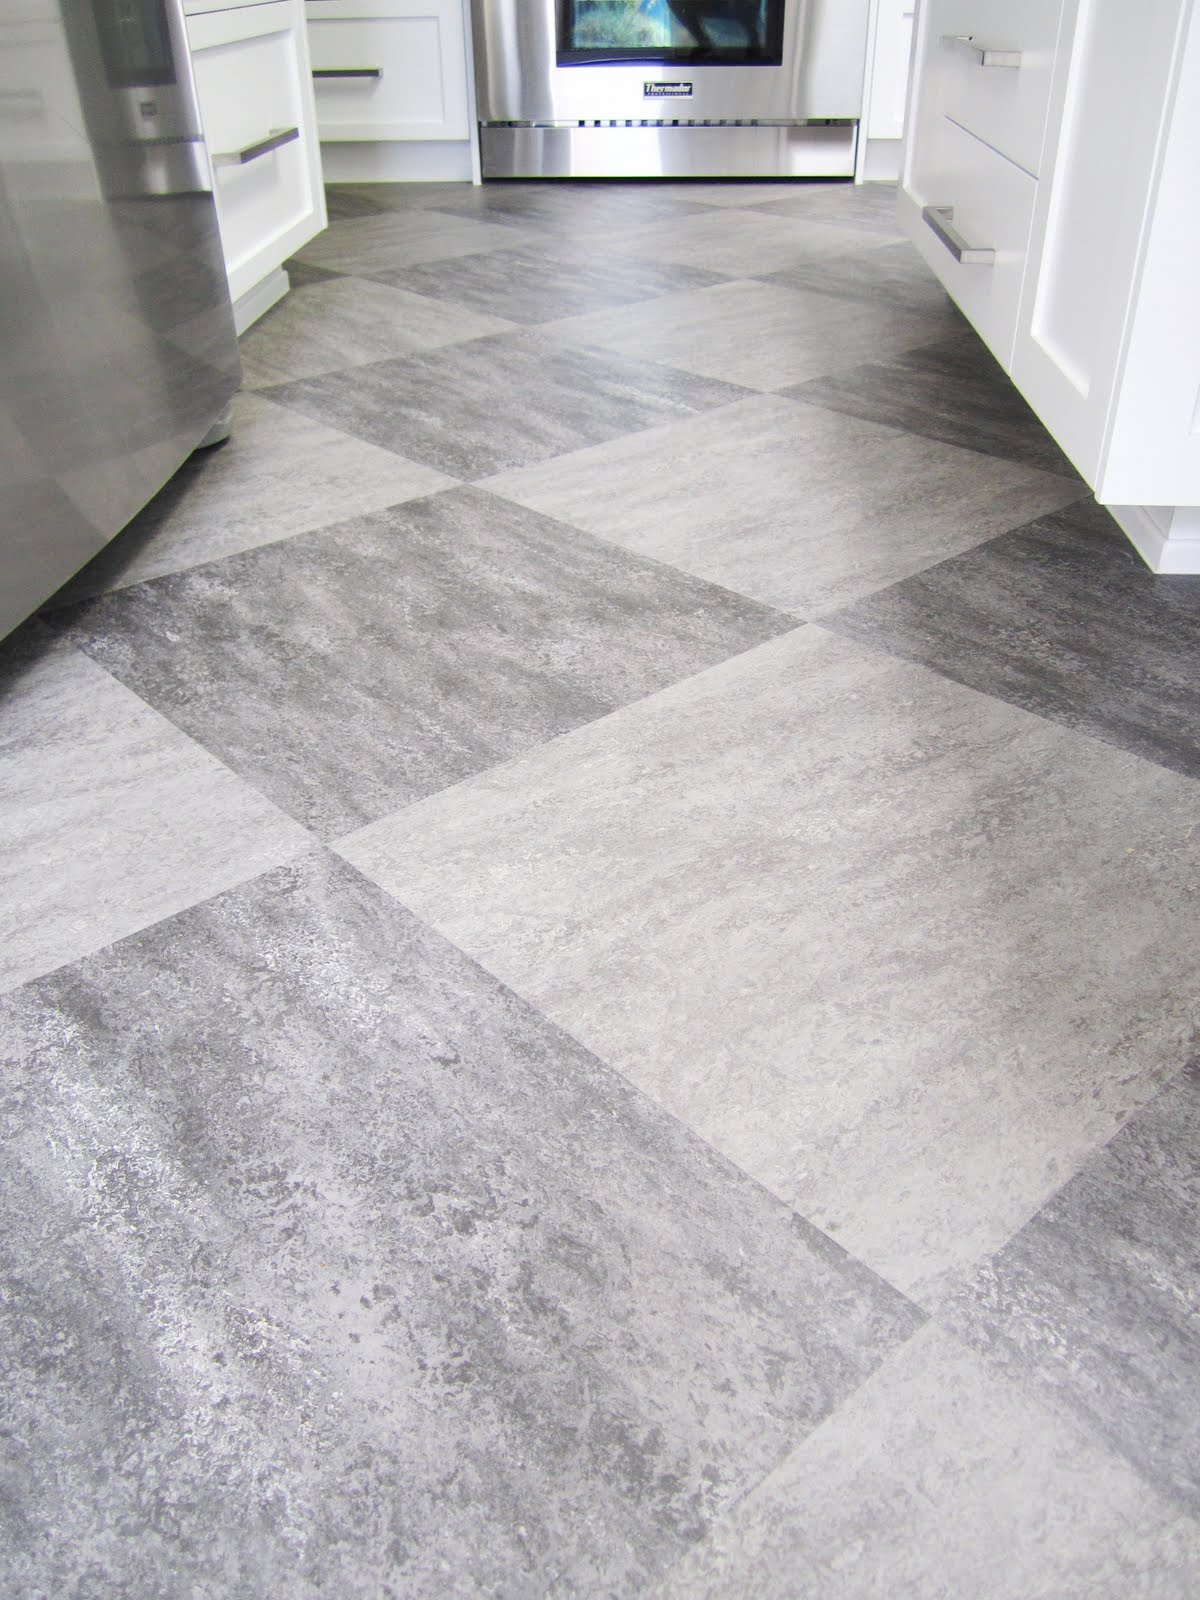 Harlequin Of Grey On Grey Tiles Is Used On The Kitchen Floor